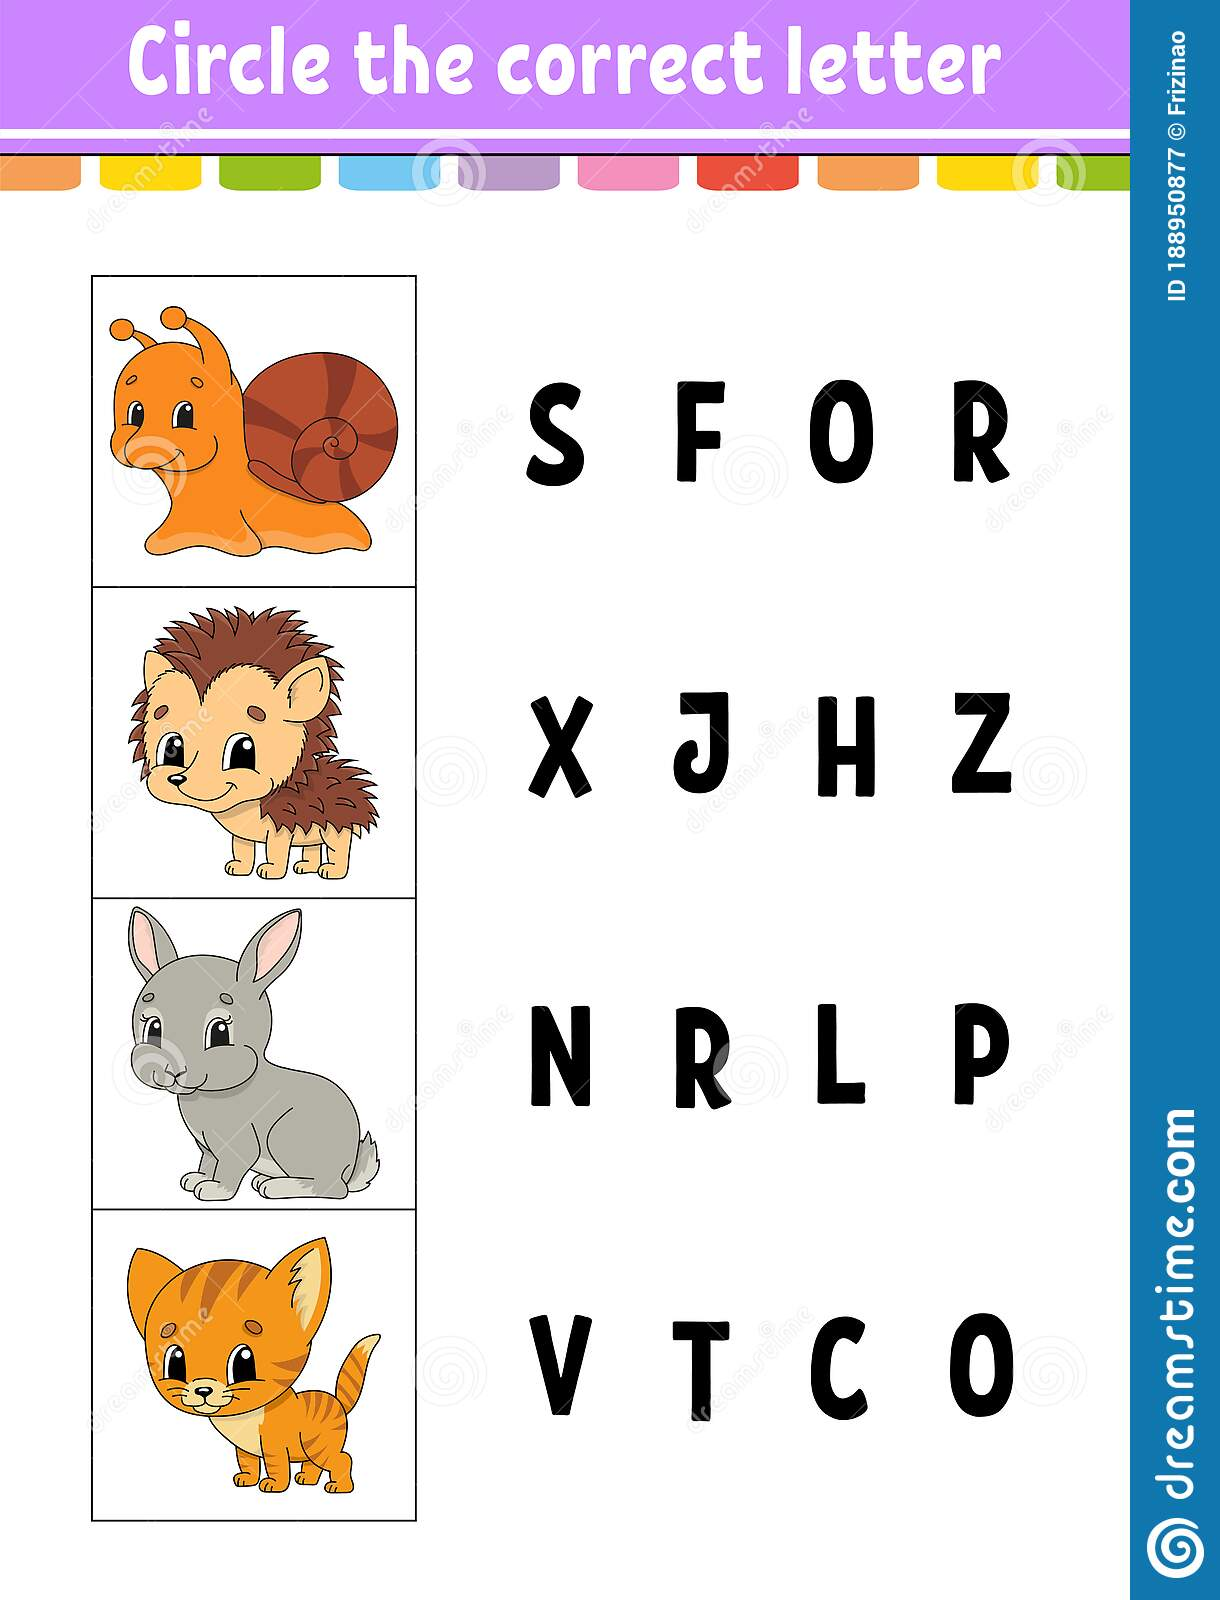 Circle The Correct Letter Education Developing Worksheet